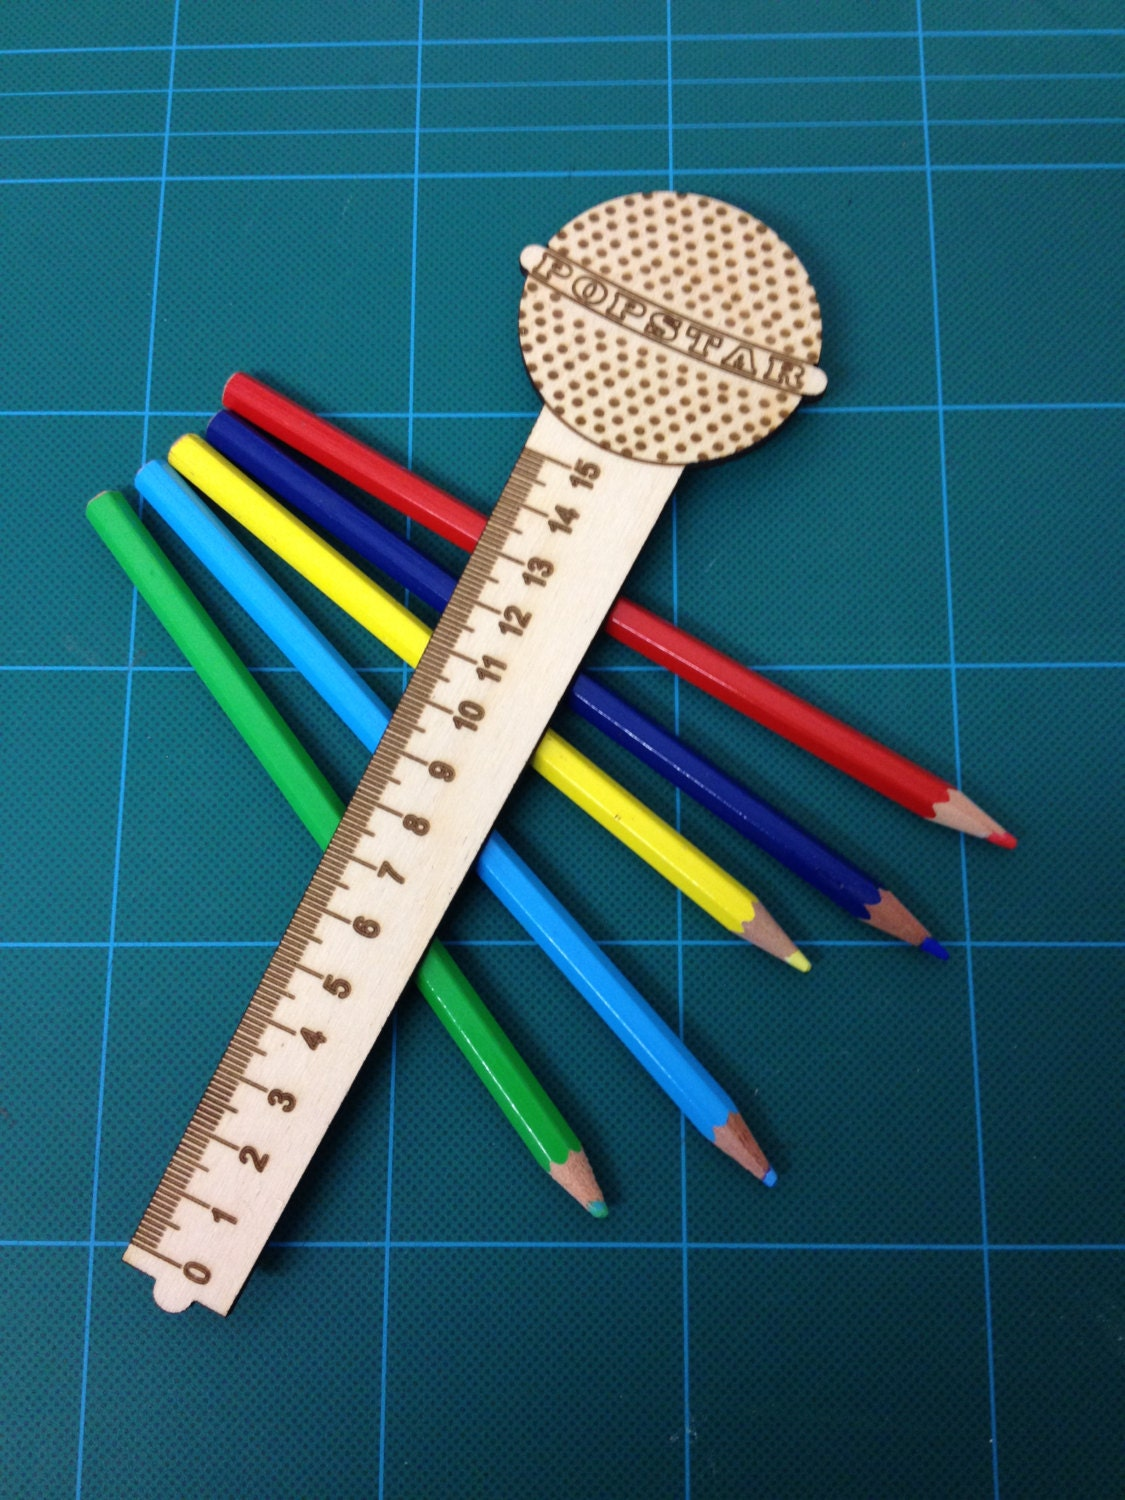 Microphone Ruler From Laserdoodle On Etsy Studio